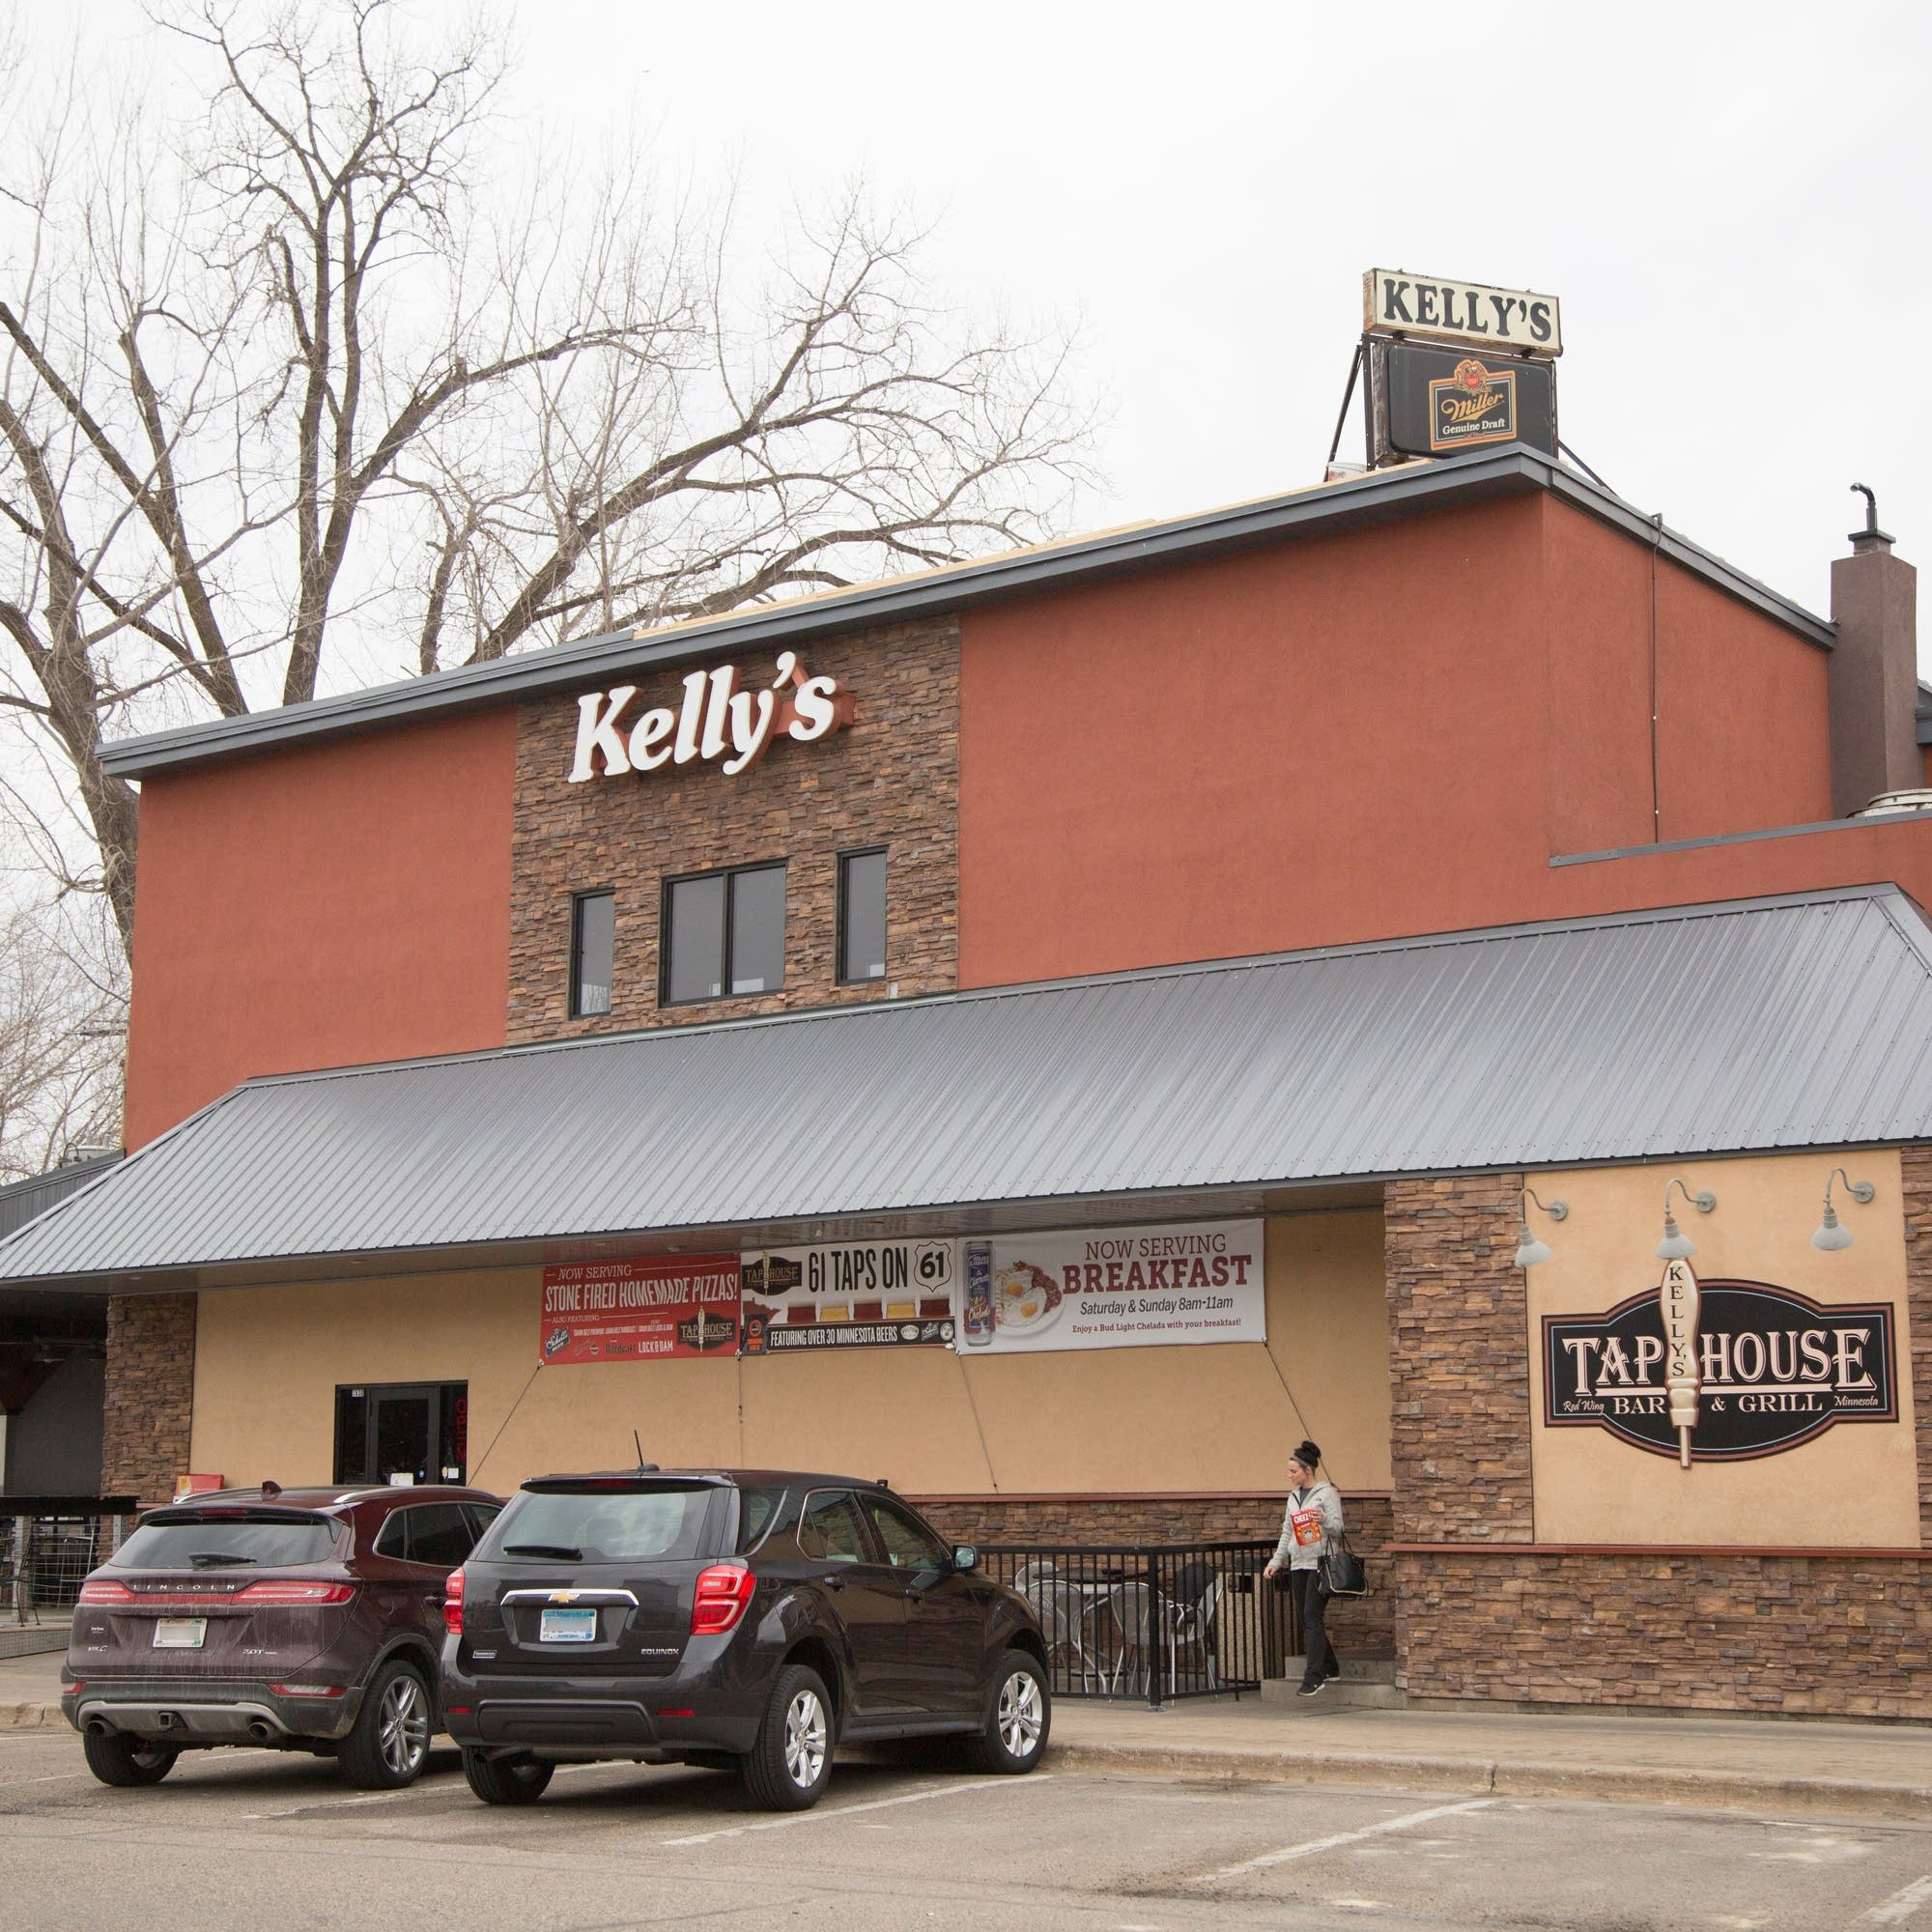 Kelly's Bar in Red Wing, Minnesota